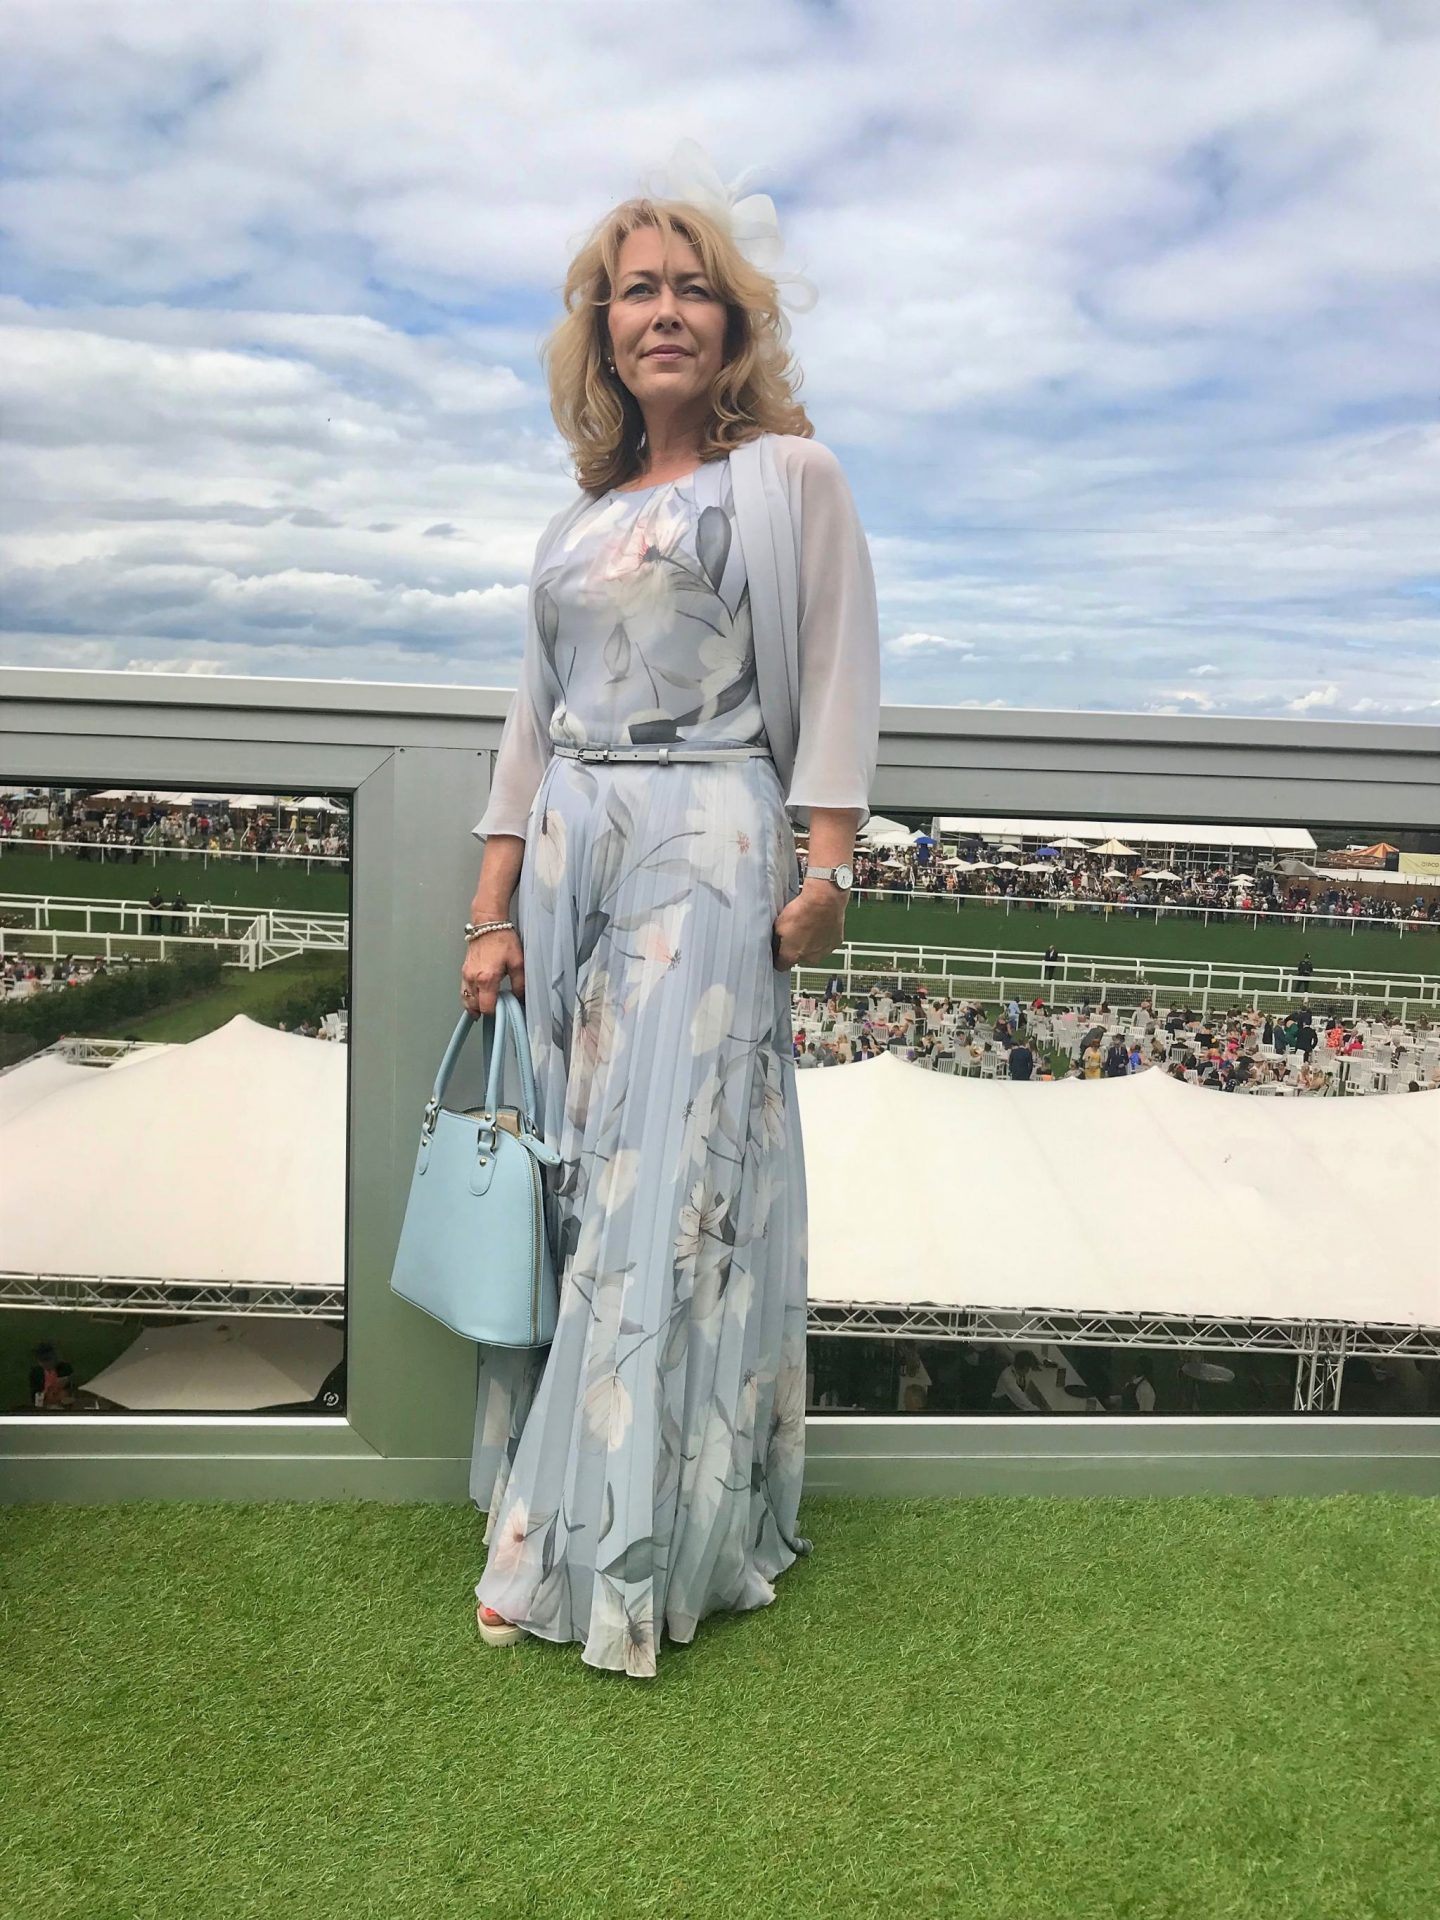 "I'd never been to Royal Ascott before either, so choosing a lovely dress and getting ""done up"" for the day was exciting. I really loved my outfit and that's what I'm sharing with you this week."